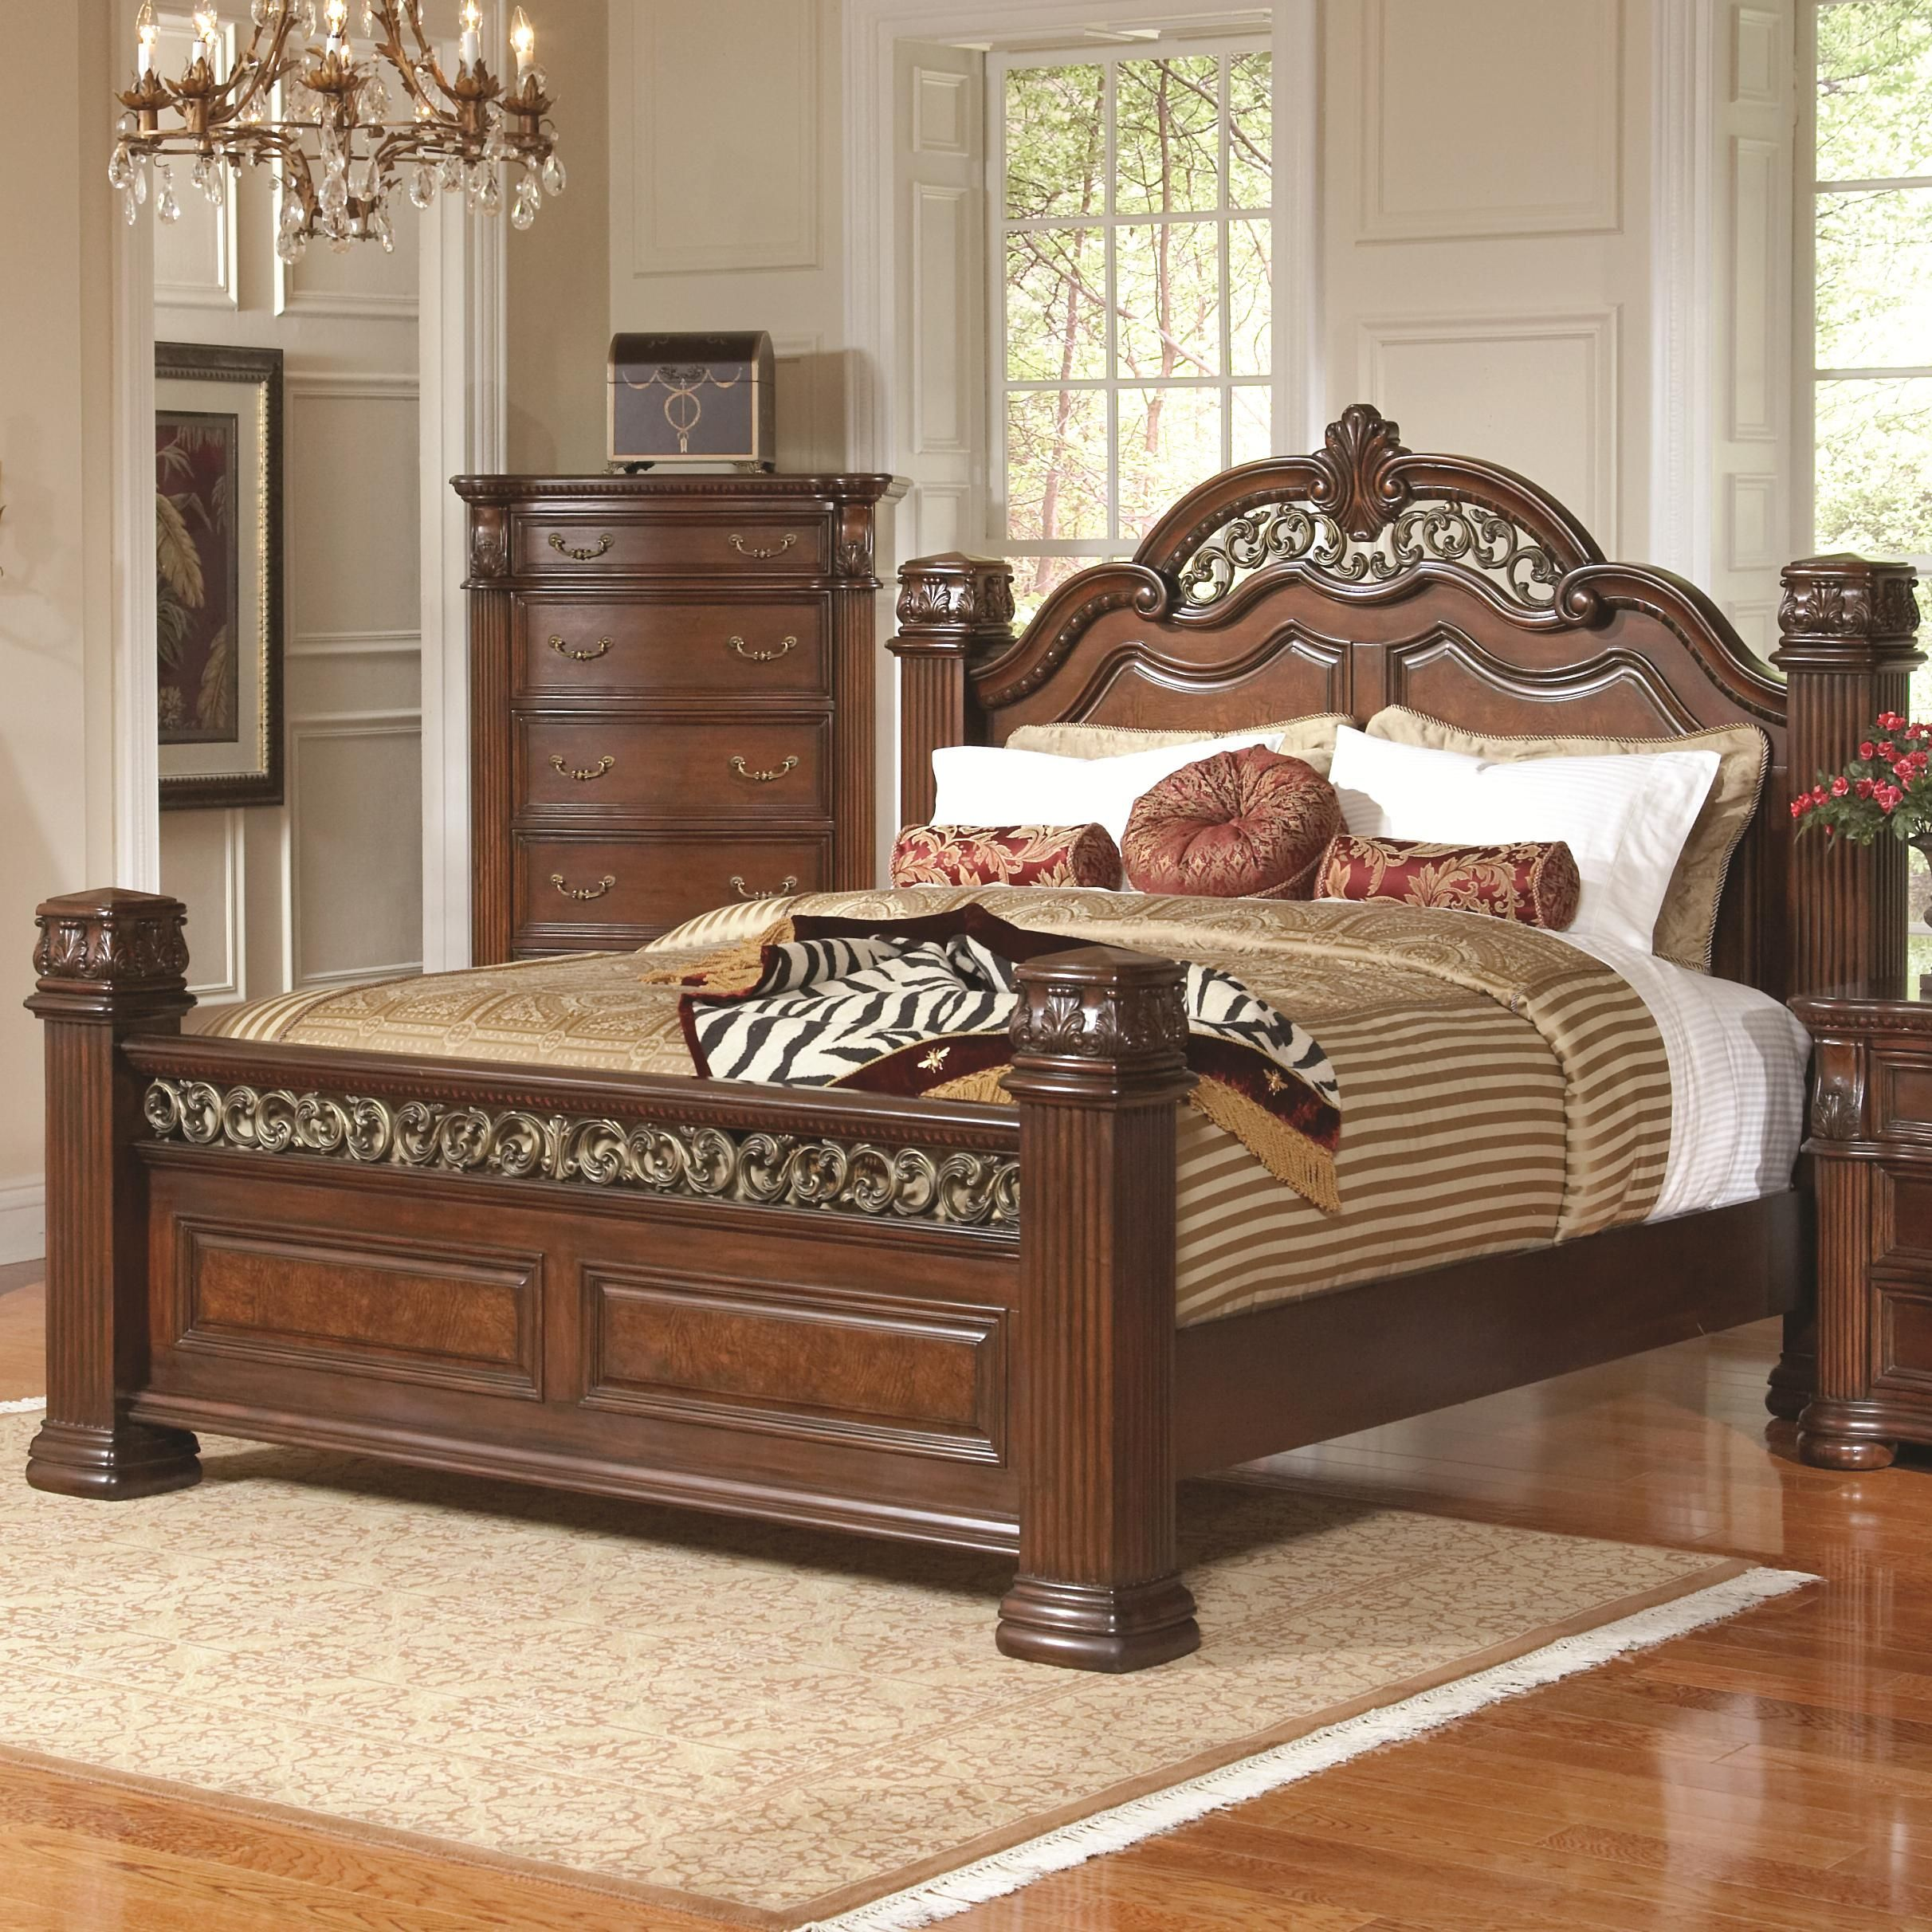 Bed headboards with storage google search fine furniture royal furniture wood bedroom furniture